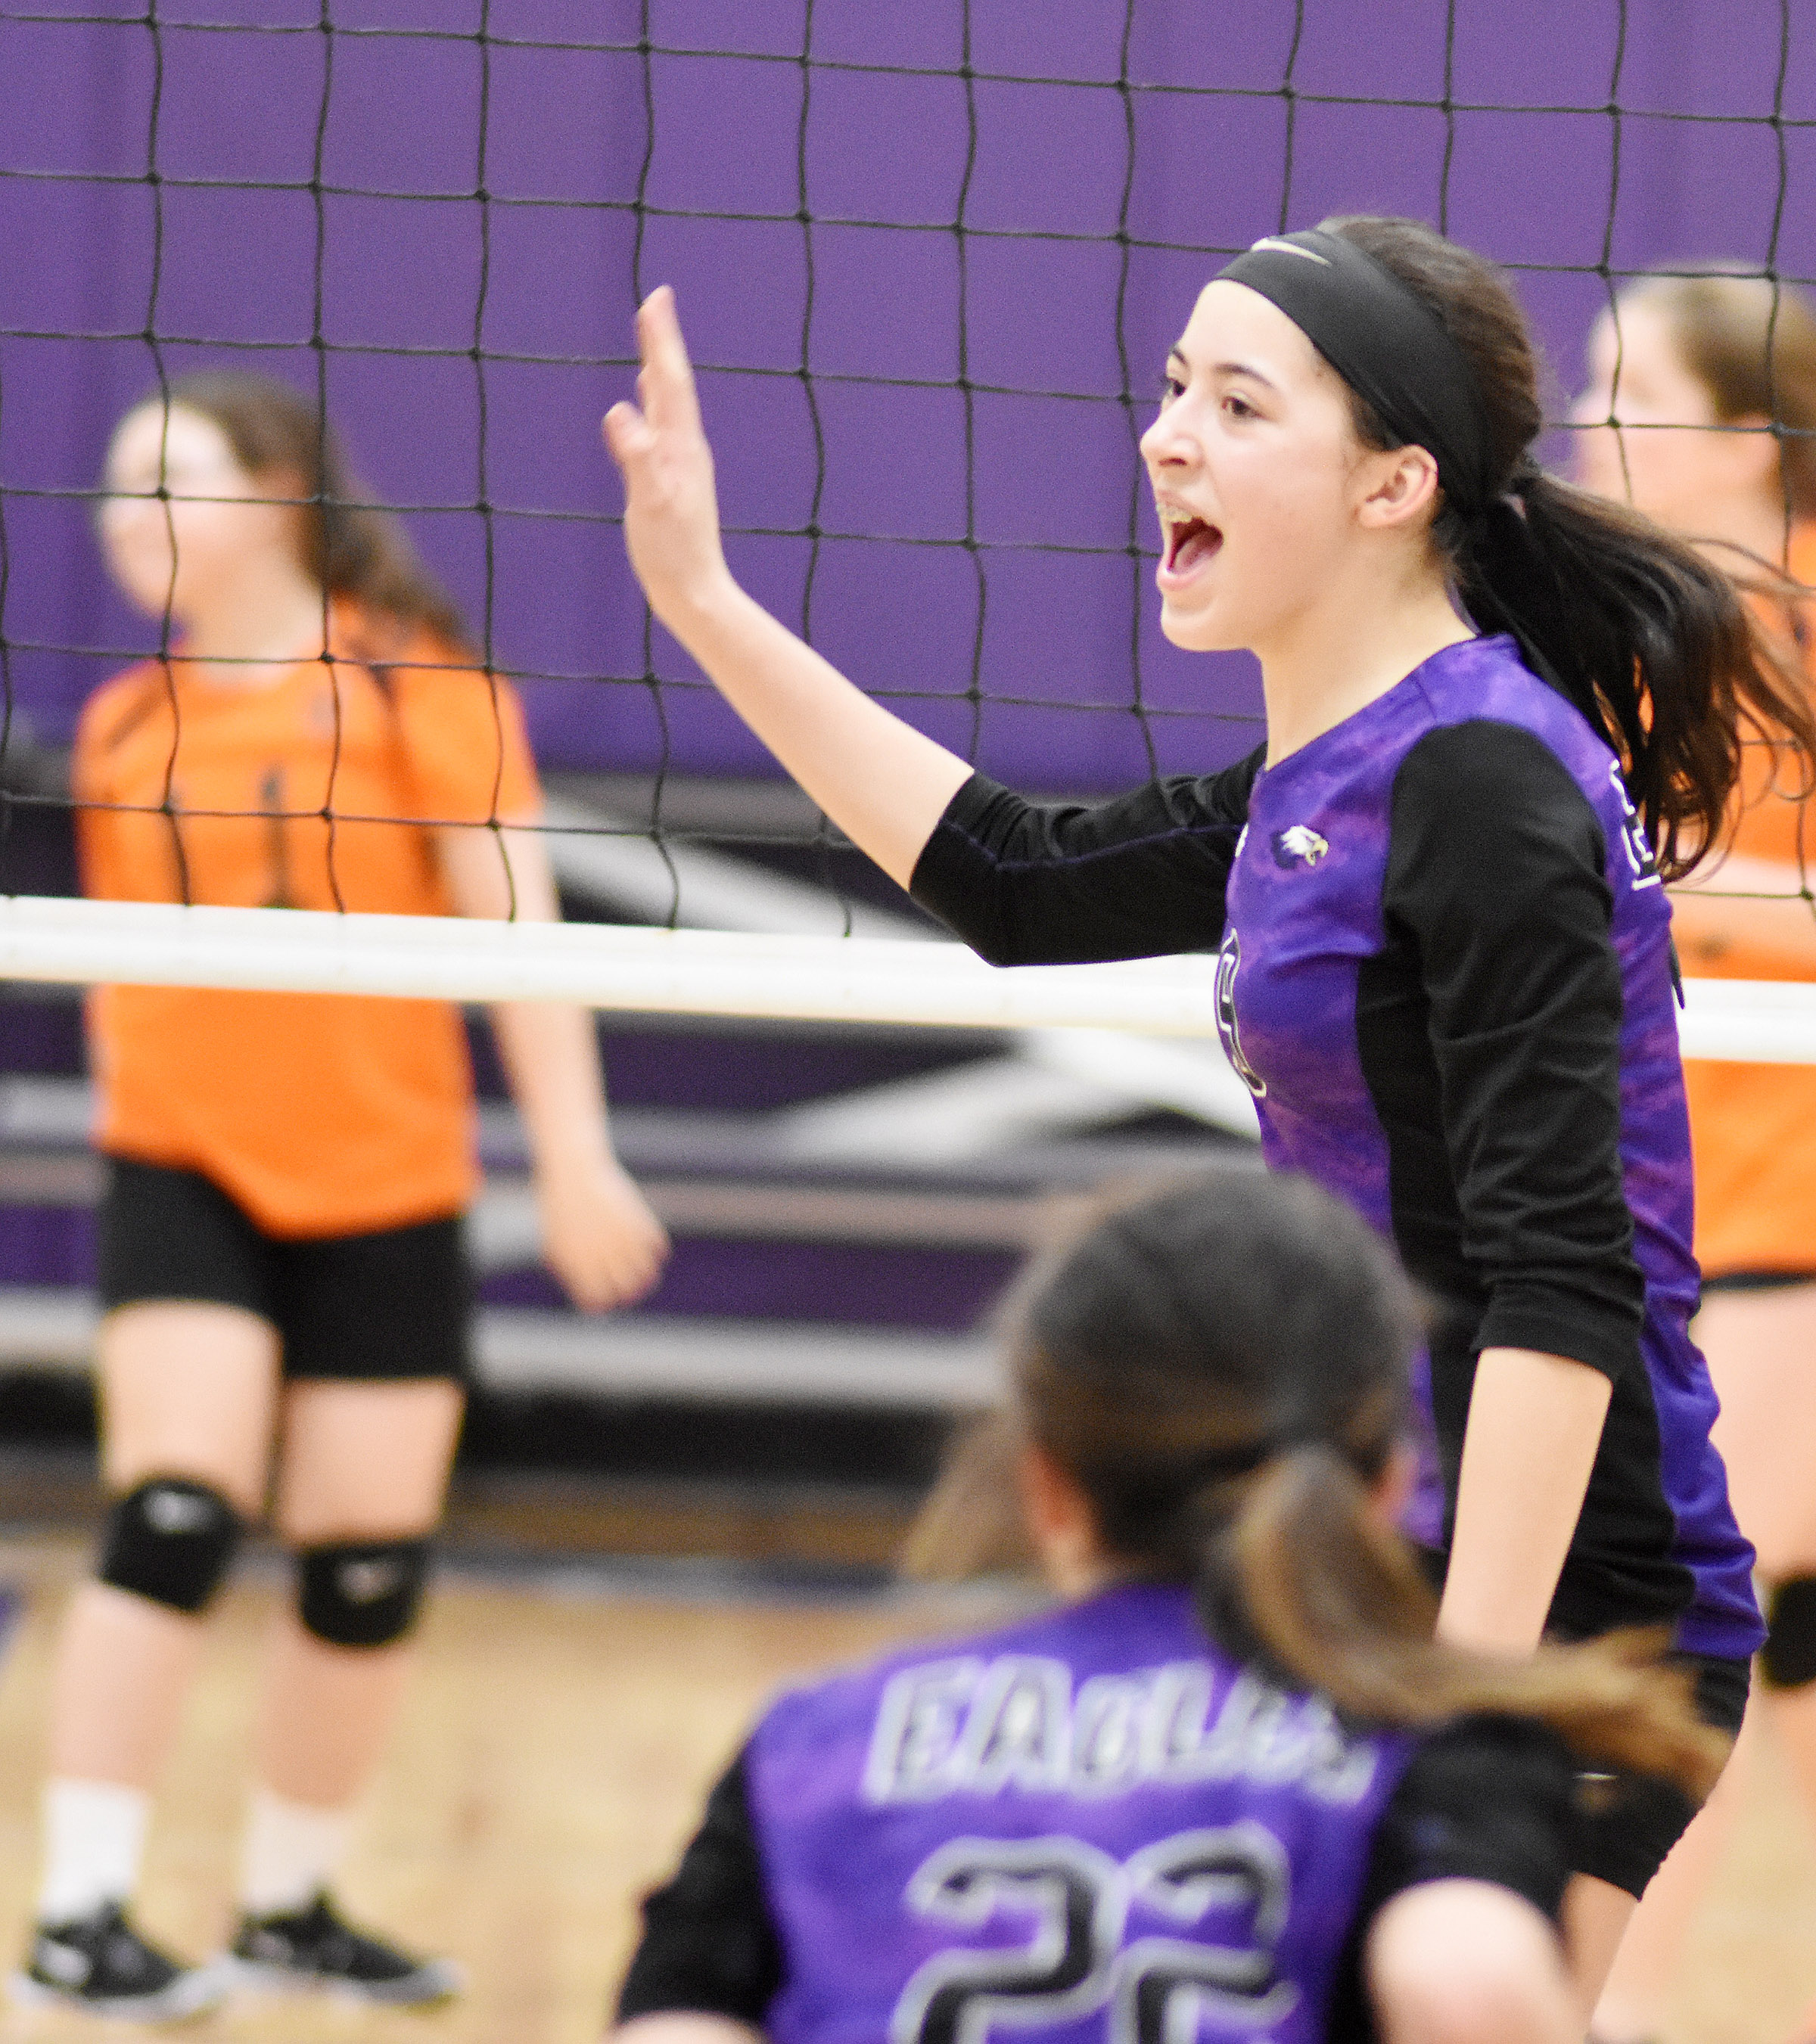 CMS eighth-grader Kaylyn Smith cheers as her team wins.